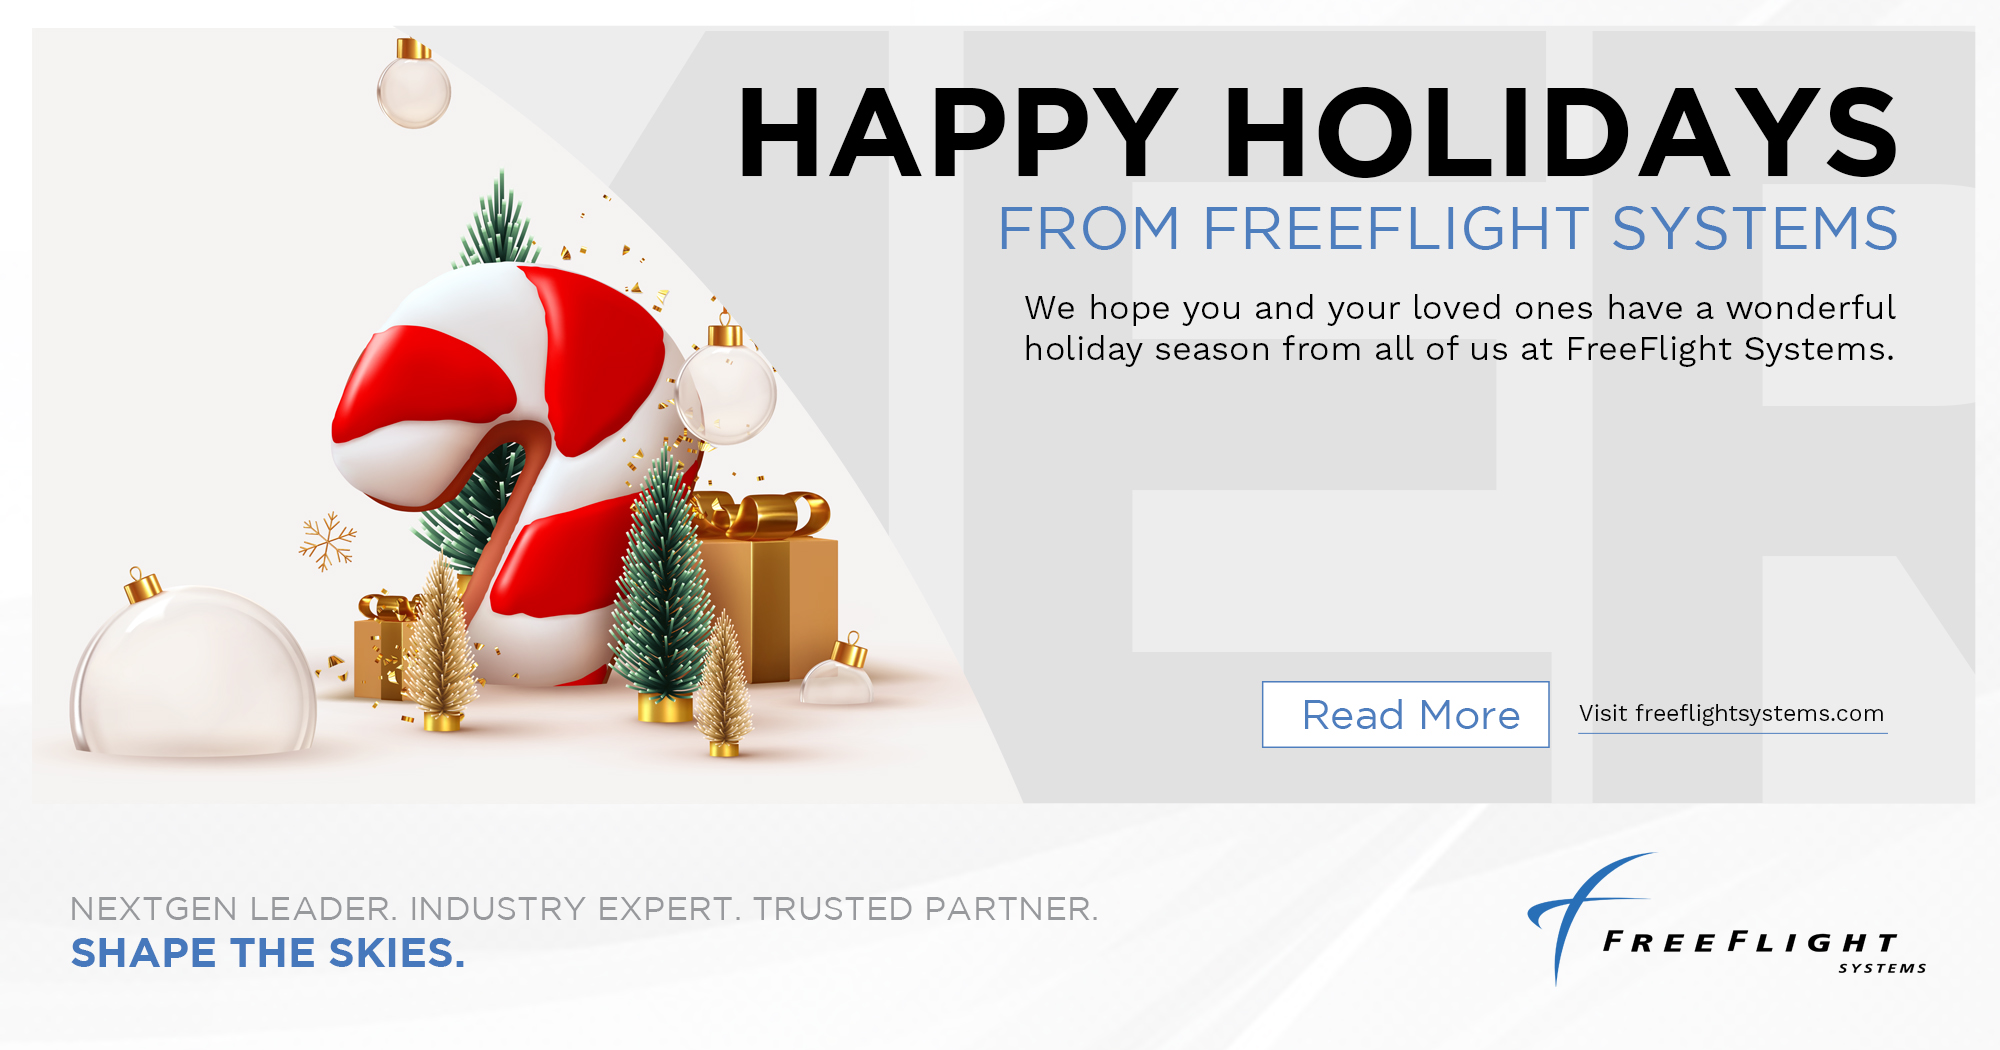 Happy Holidays from FreeFlight Systems